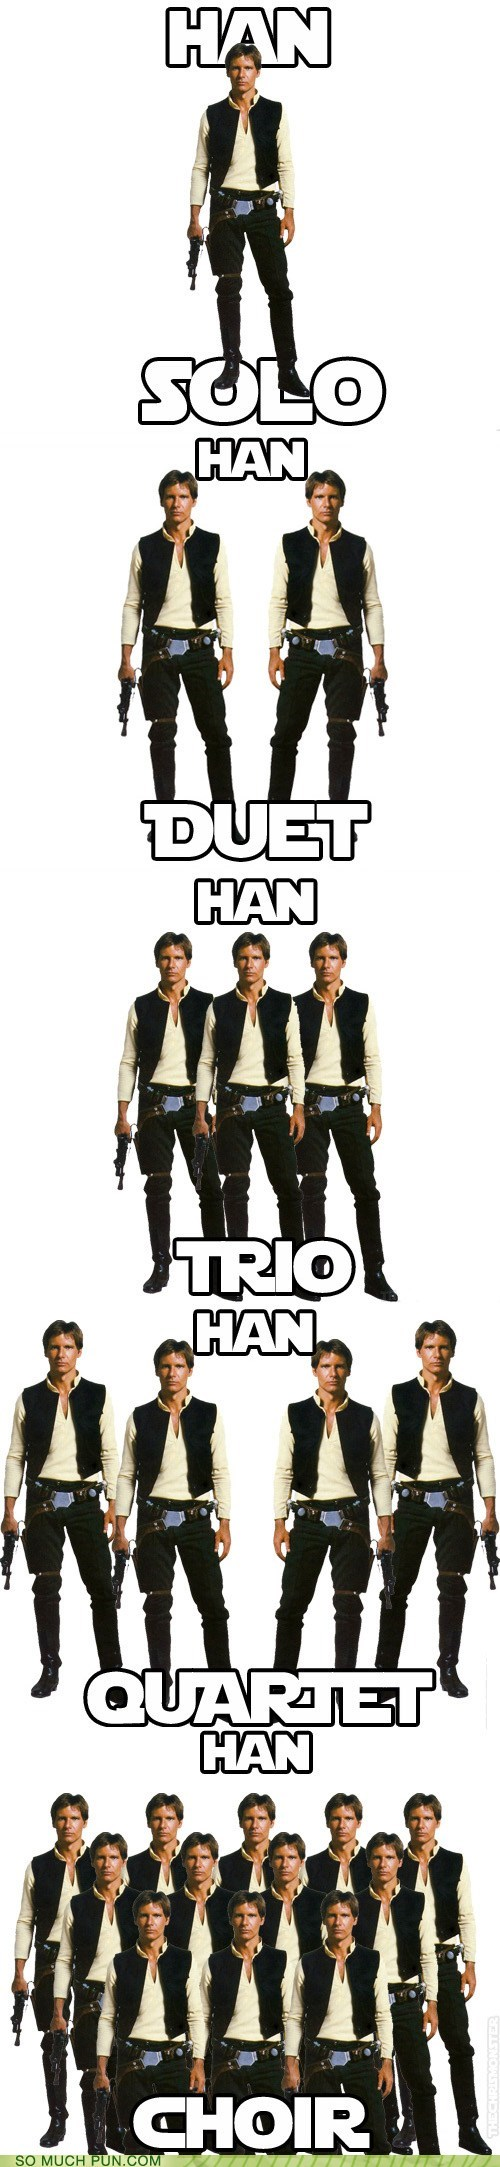 choir,double meaning,duet,Hall of Fame,Han Solo,literalism,quartet,star wars,surname,trio